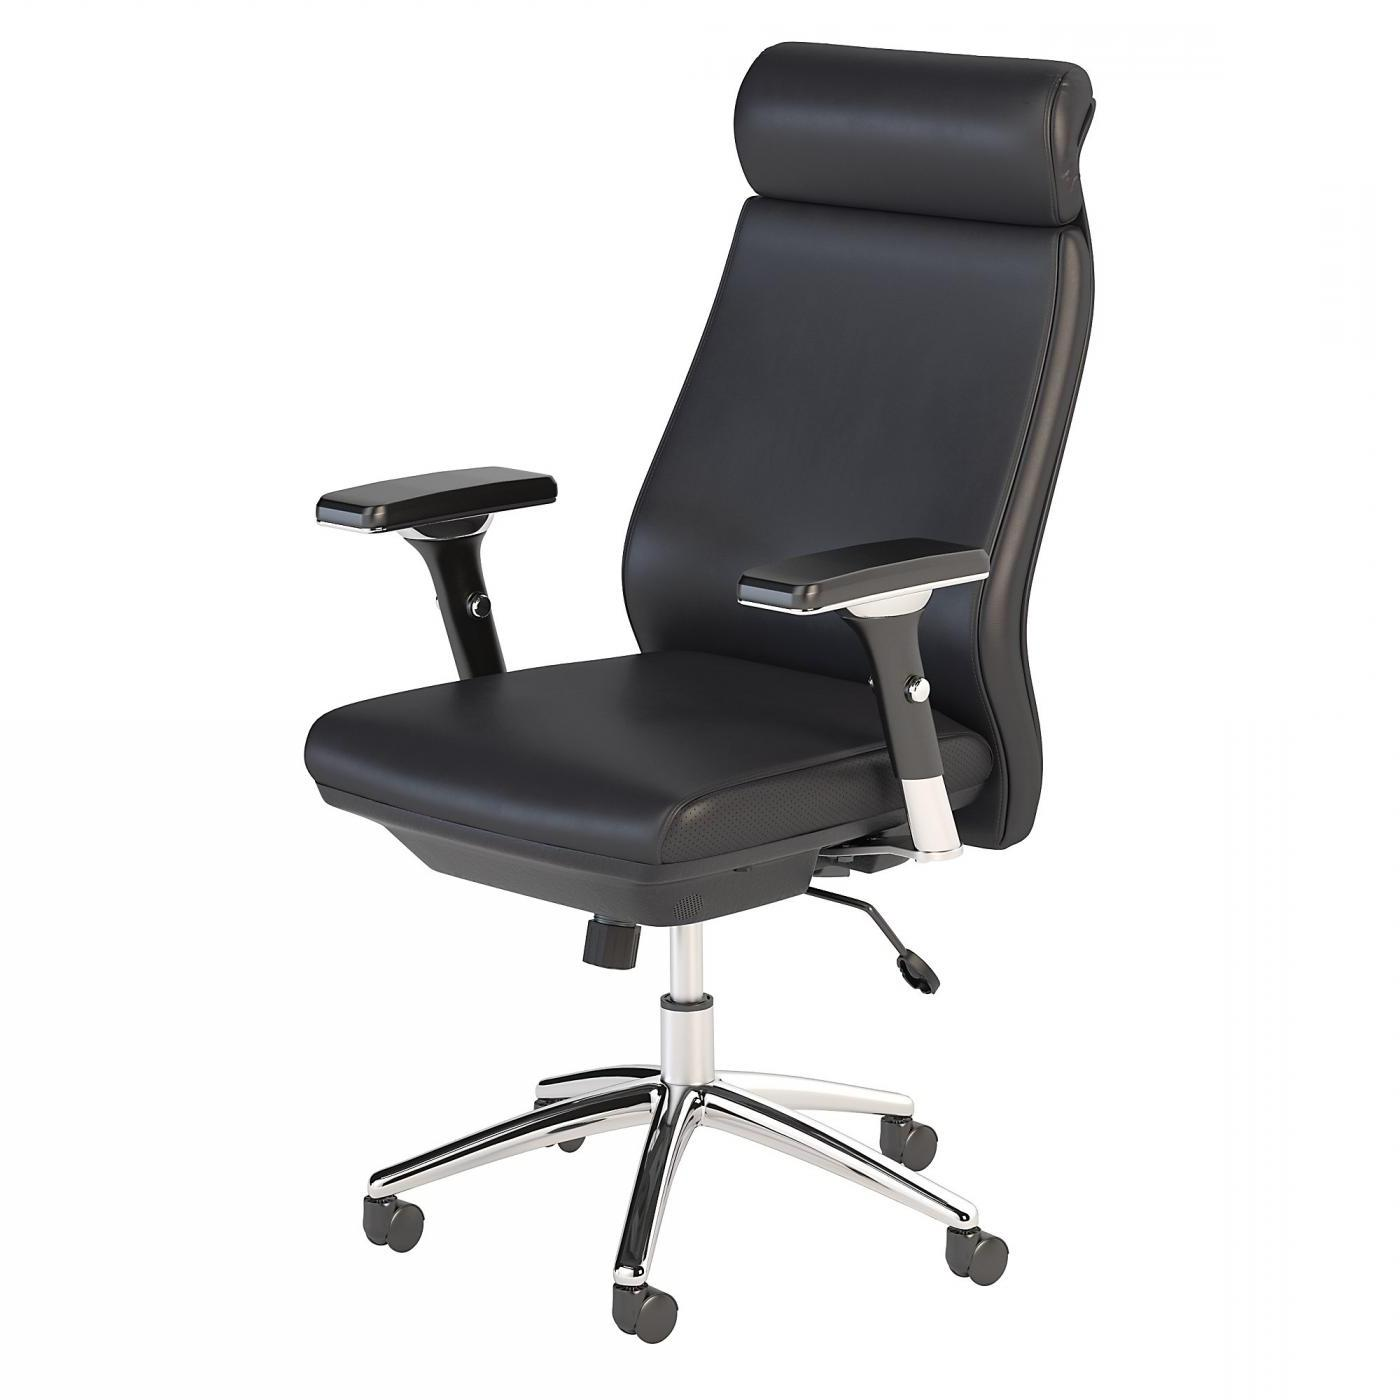 BUSH BUSINESS FURNITURE METROPOLIS HIGH BACK LEATHER EXECUTIVE OFFICE CHAIR. FREE SHIPPING.  SALE DEDUCT 10% MORE ENTER '10percent' IN COUPON CODE BOX WHILE CHECKING OUT.